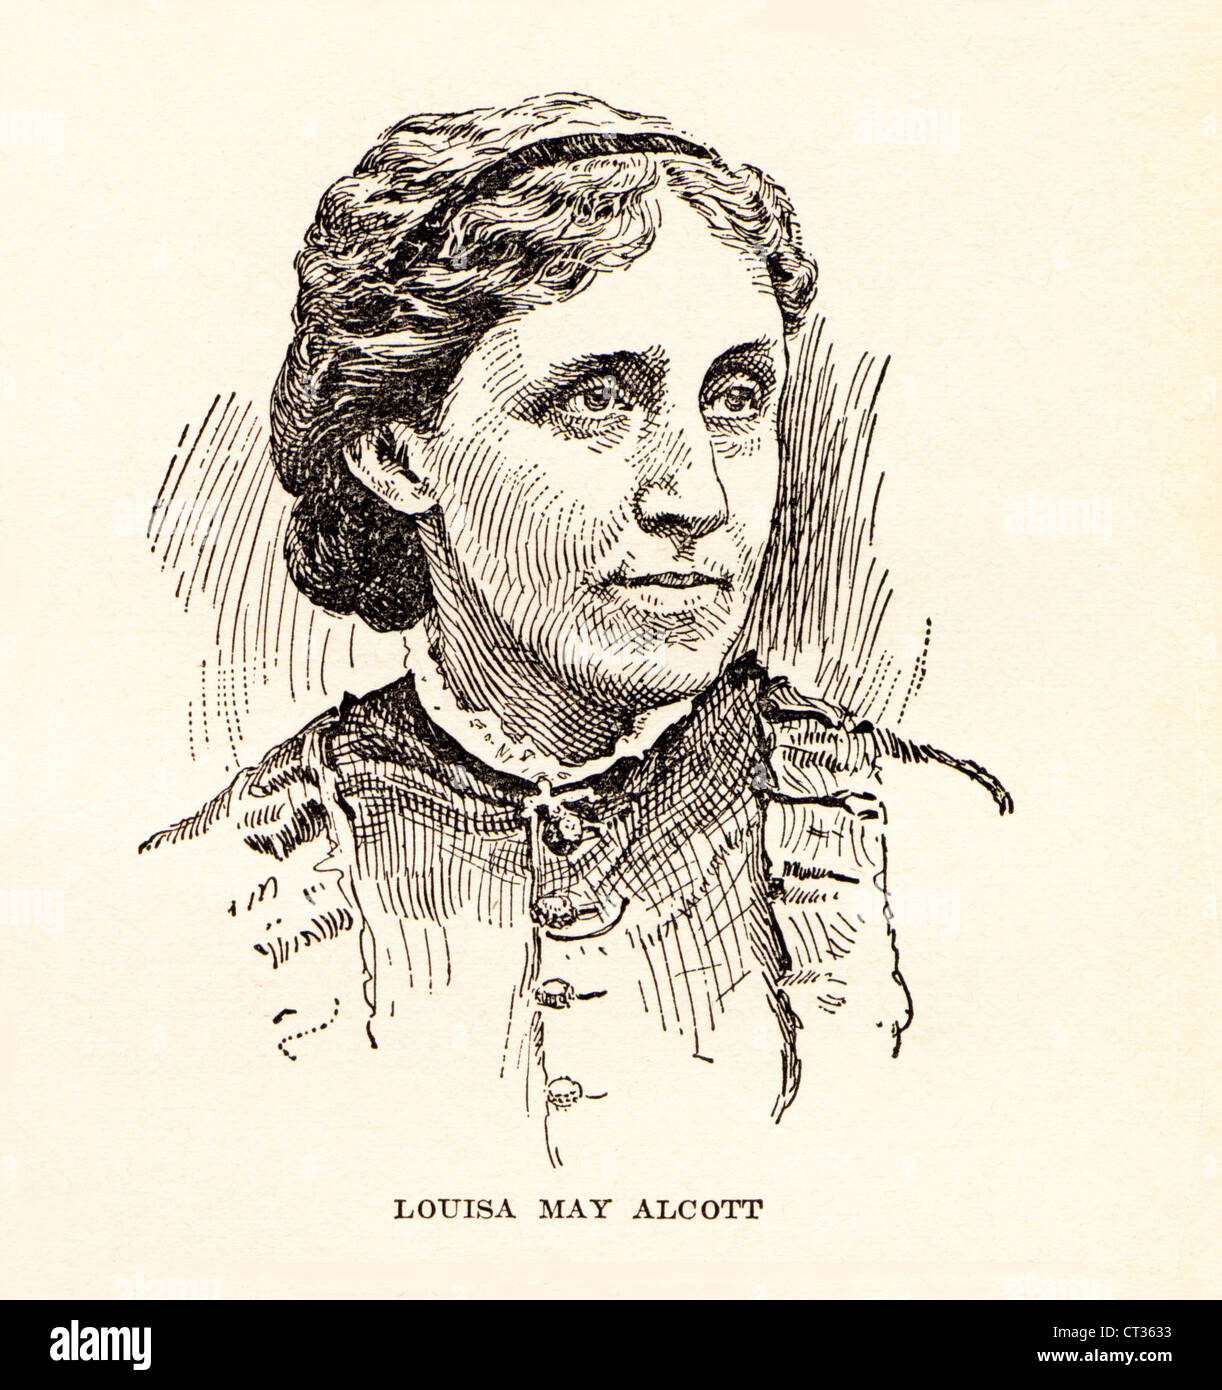 Vintage engraving of Louisa May Alcott,1832-1888, American author. - Stock Image